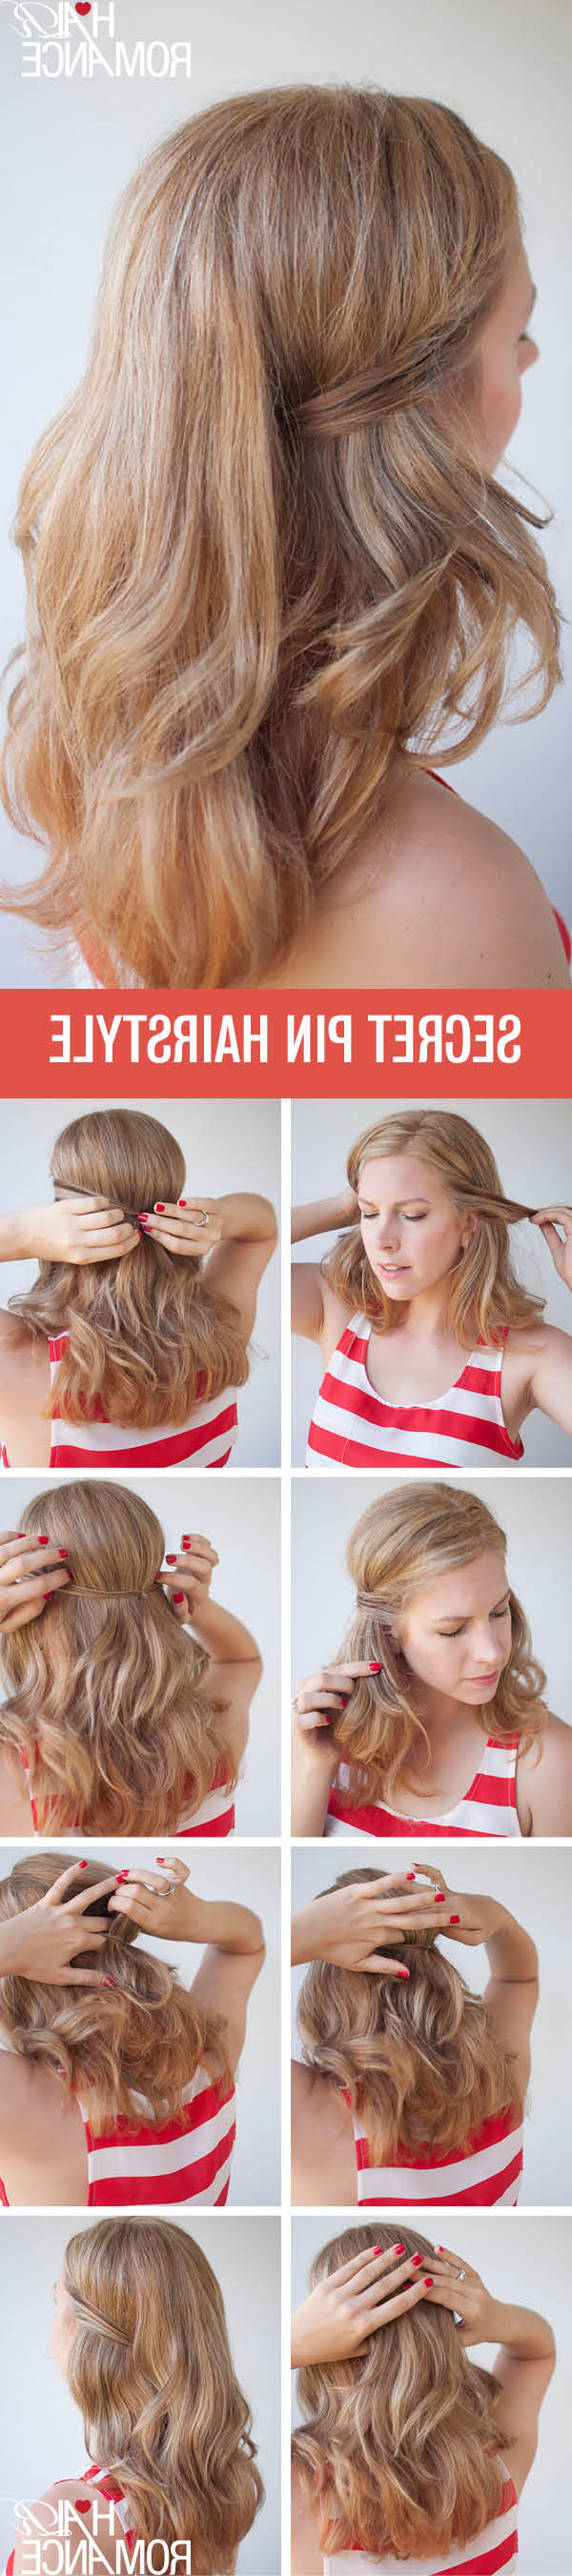 Two Easy Ways To Pin Back Your Hair – Hair Romance Within Recent Pinned Back Side Hairstyles (View 8 of 20)